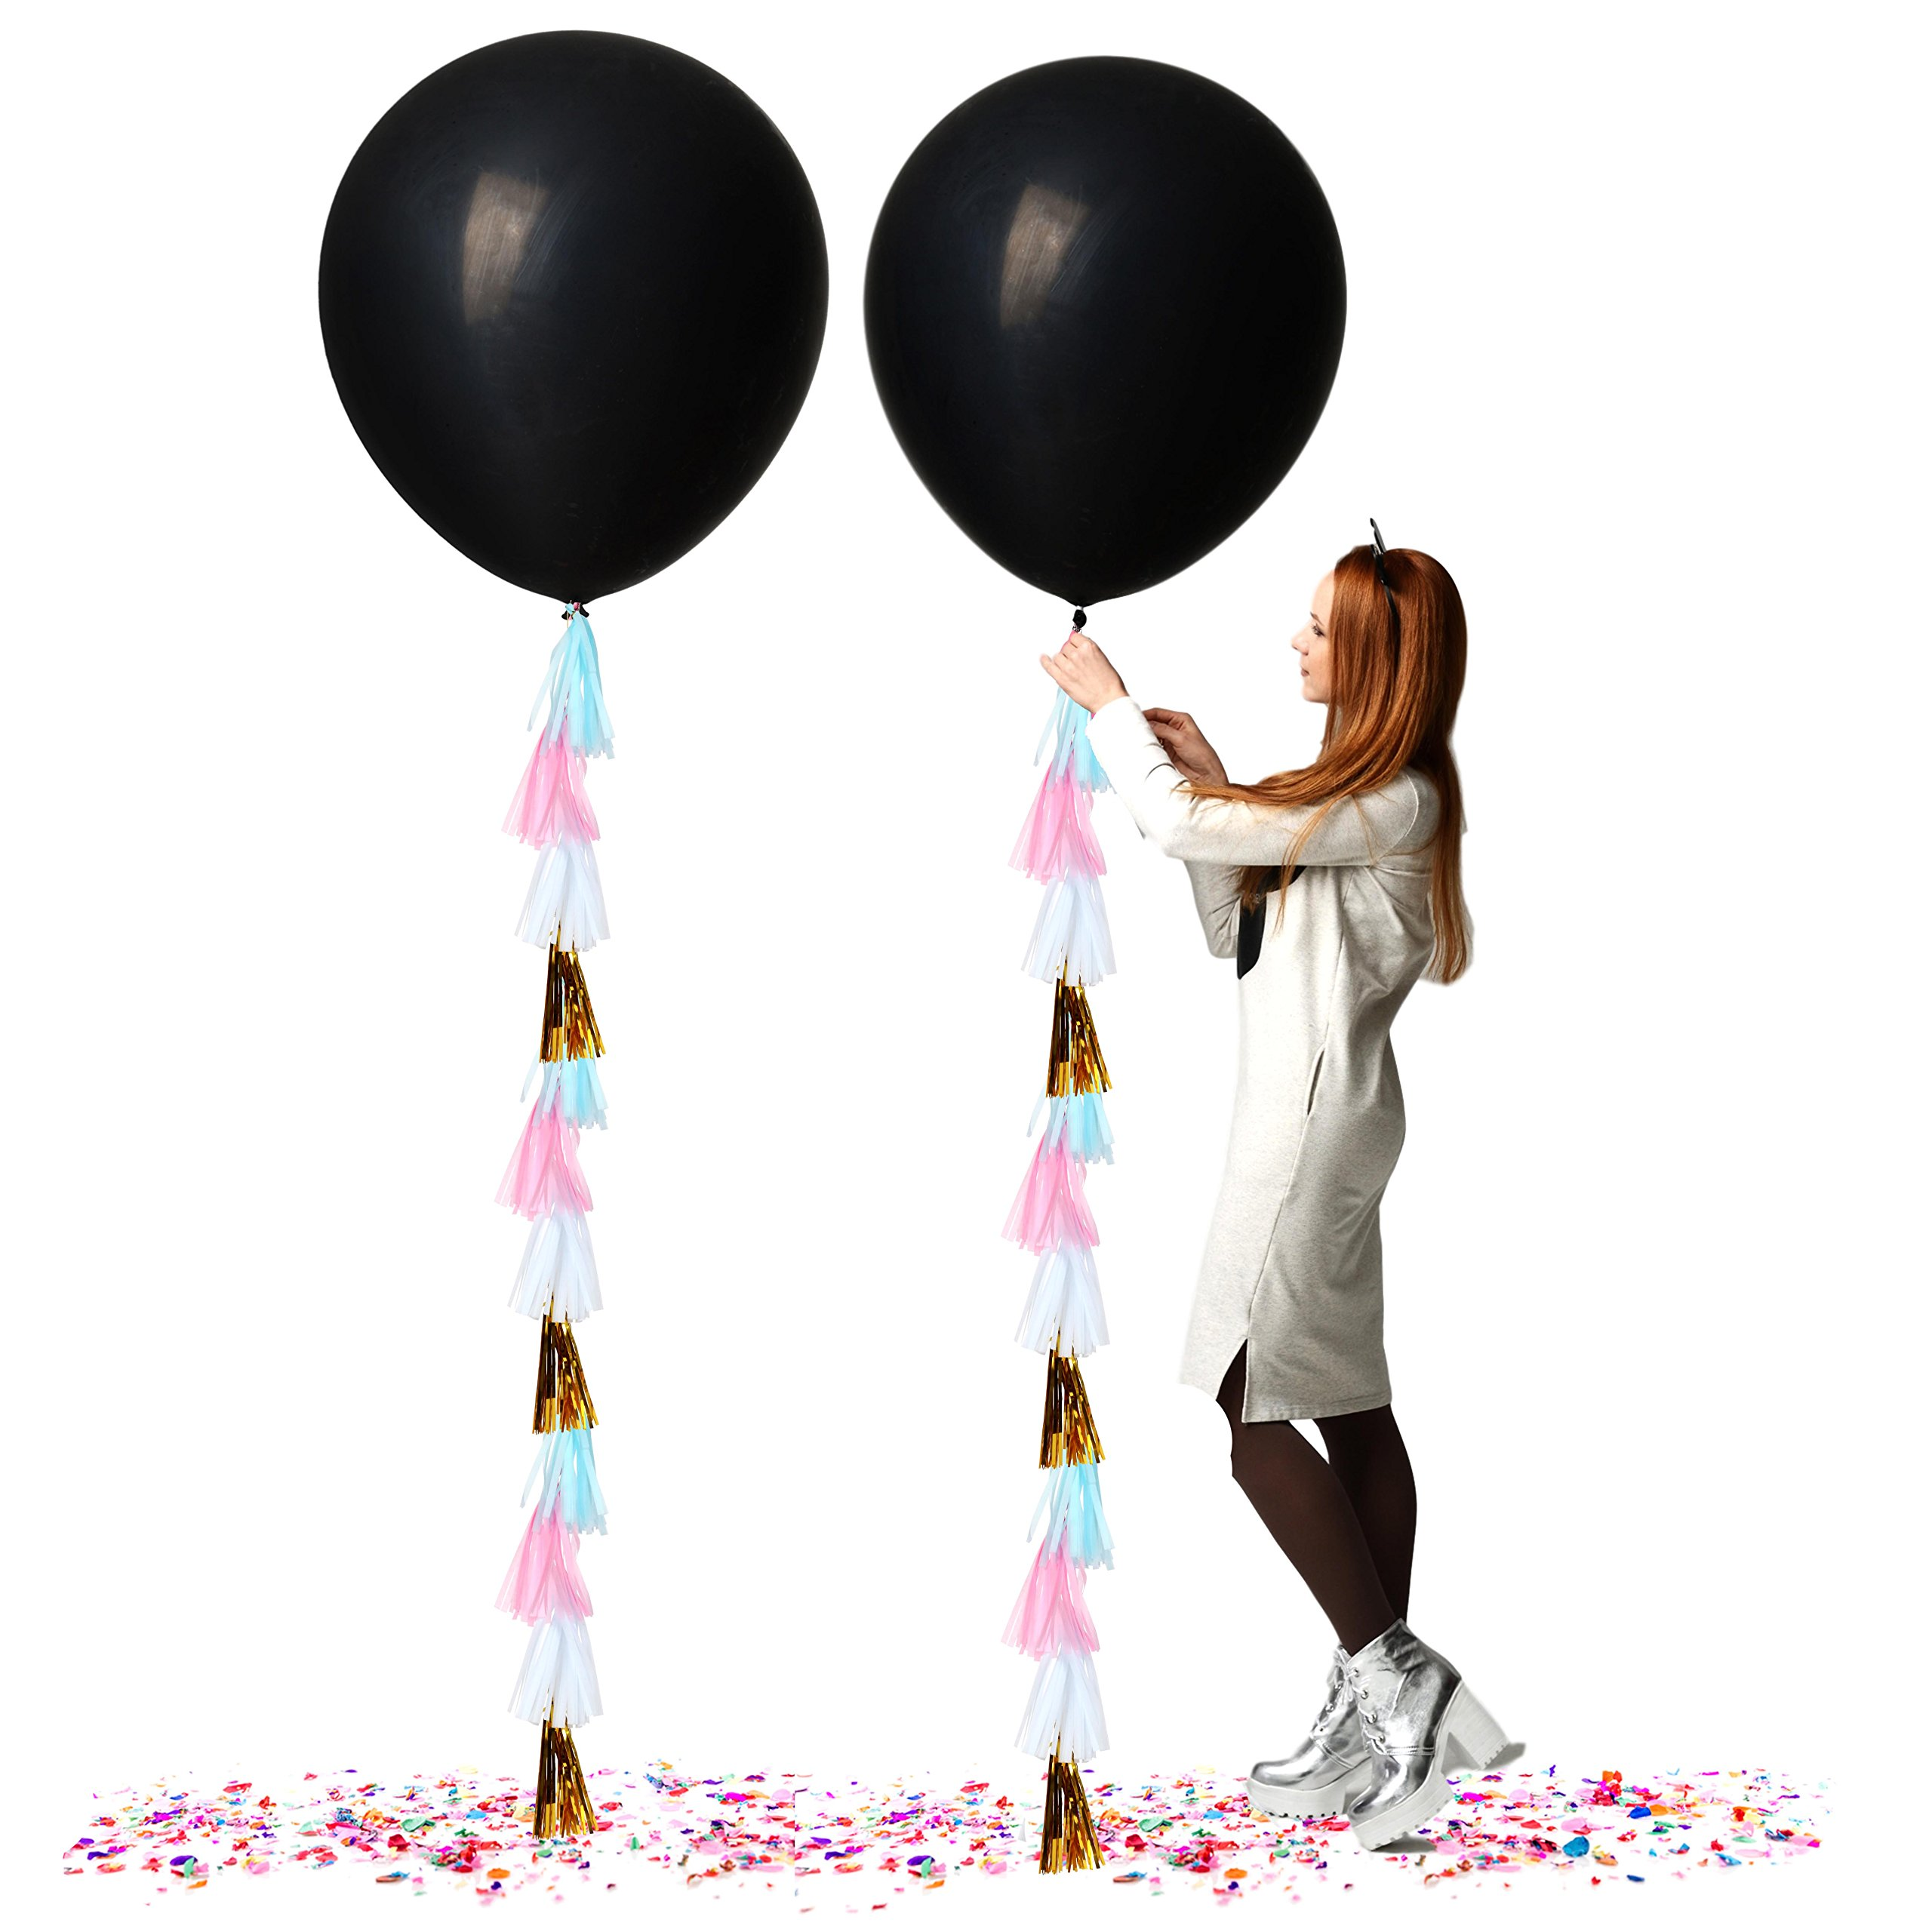 Treasures Gifted Baby Gender Reveal Party Supplies 36 Inch Black Confetti Balloons for Boy or Girl Neutral Decor Kits with Pink and Blue Confetti Gold and Black Decorations